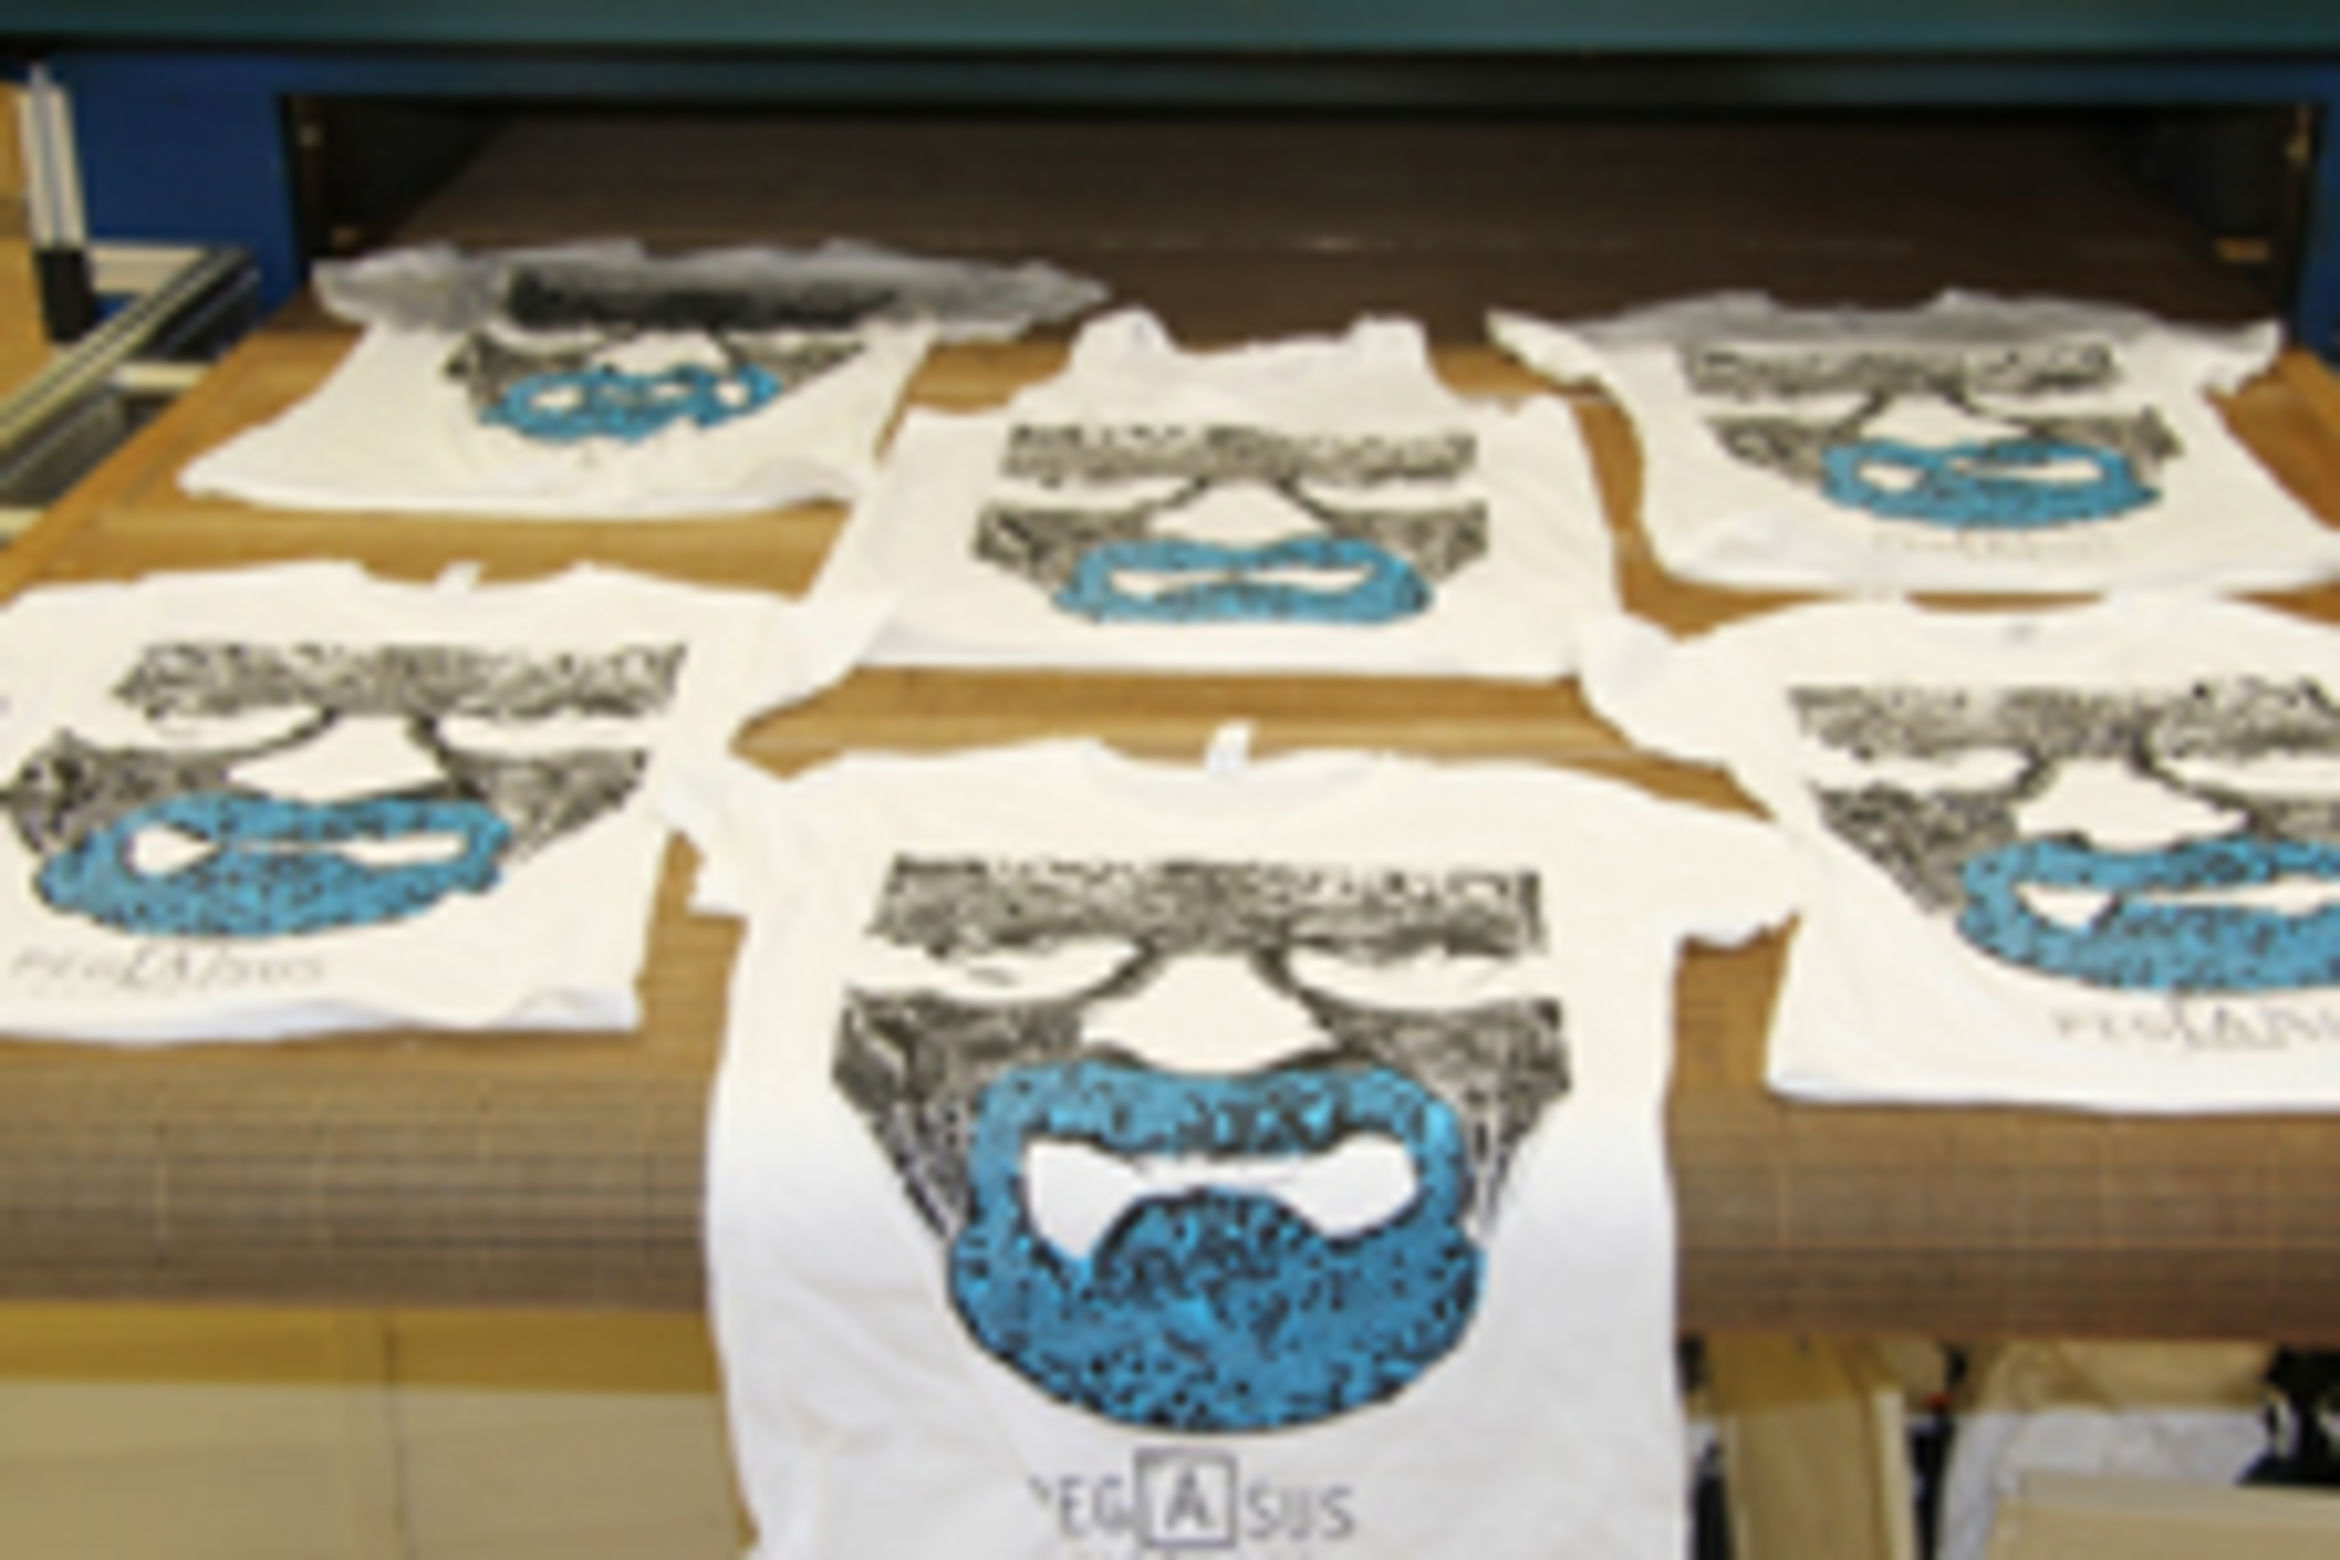 Screen Printed T-Shirts are Popular Choices